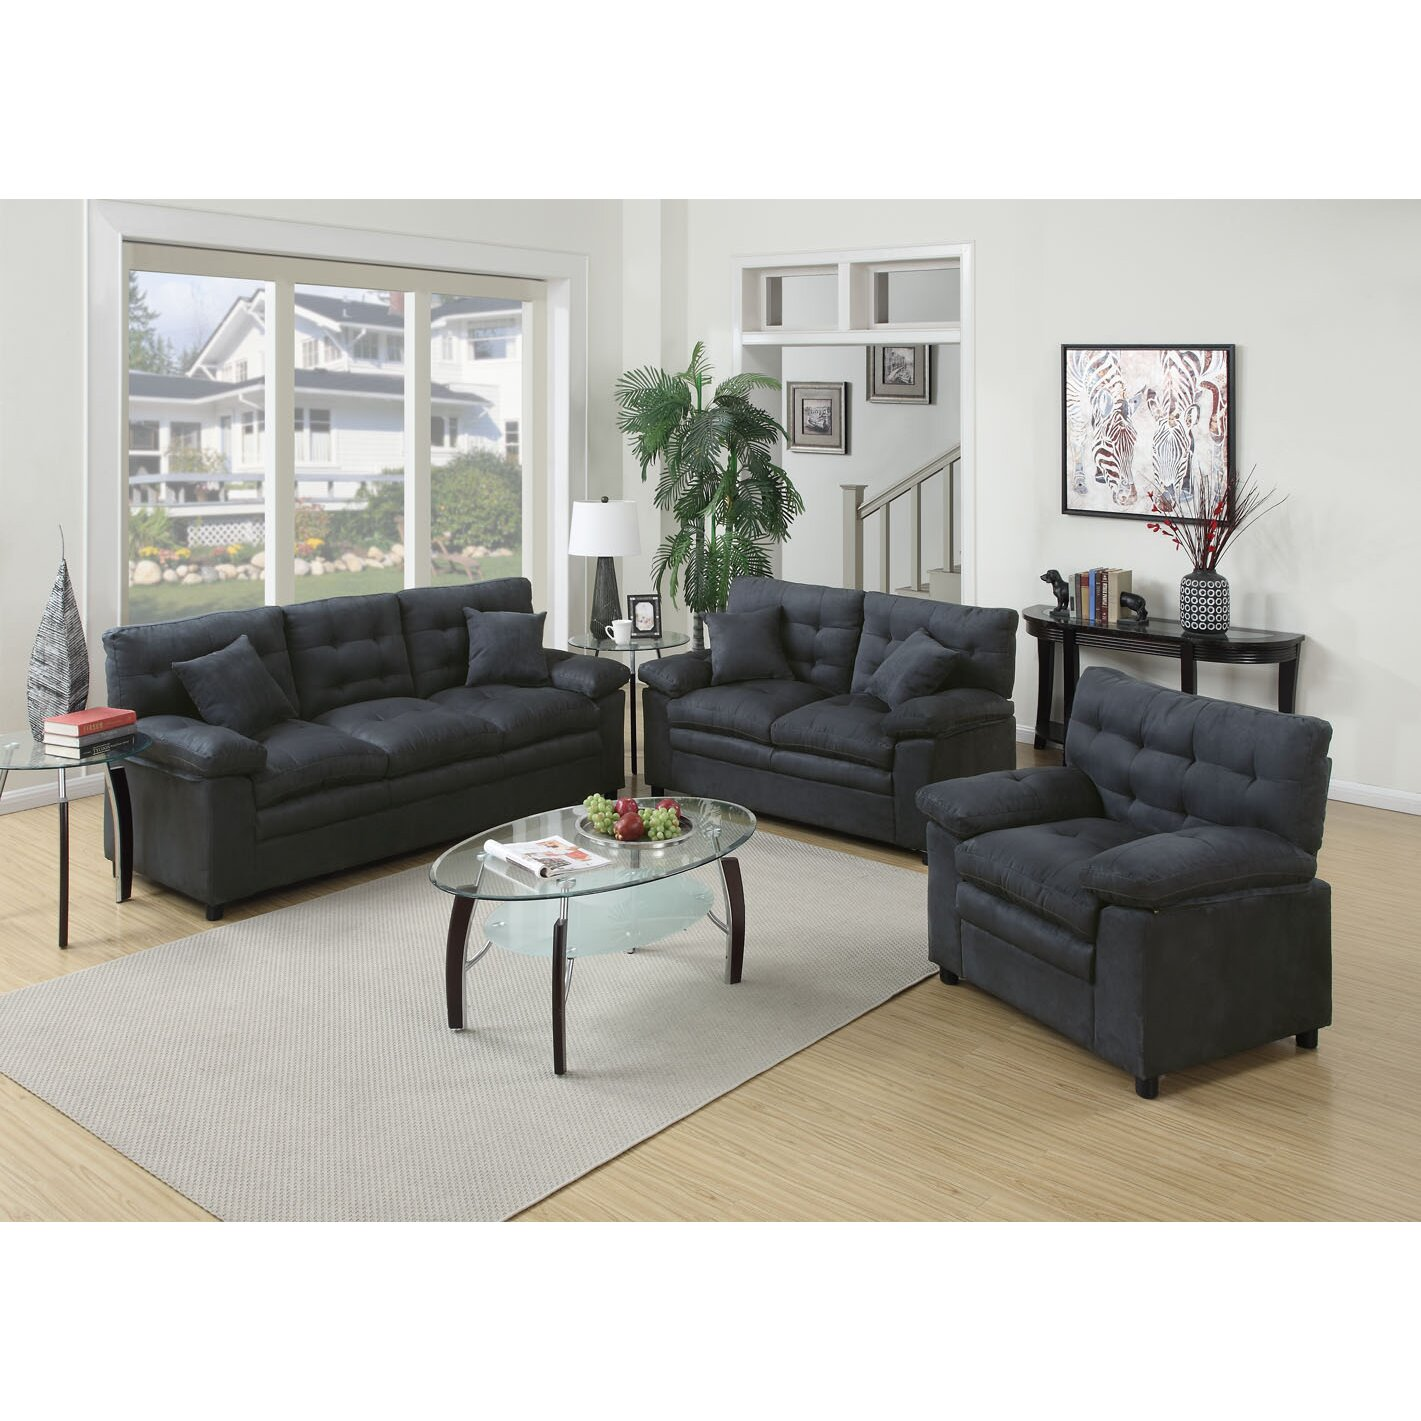 Poundex bobkona colona 3 piece living room set reviews for Fitting furniture in small living room